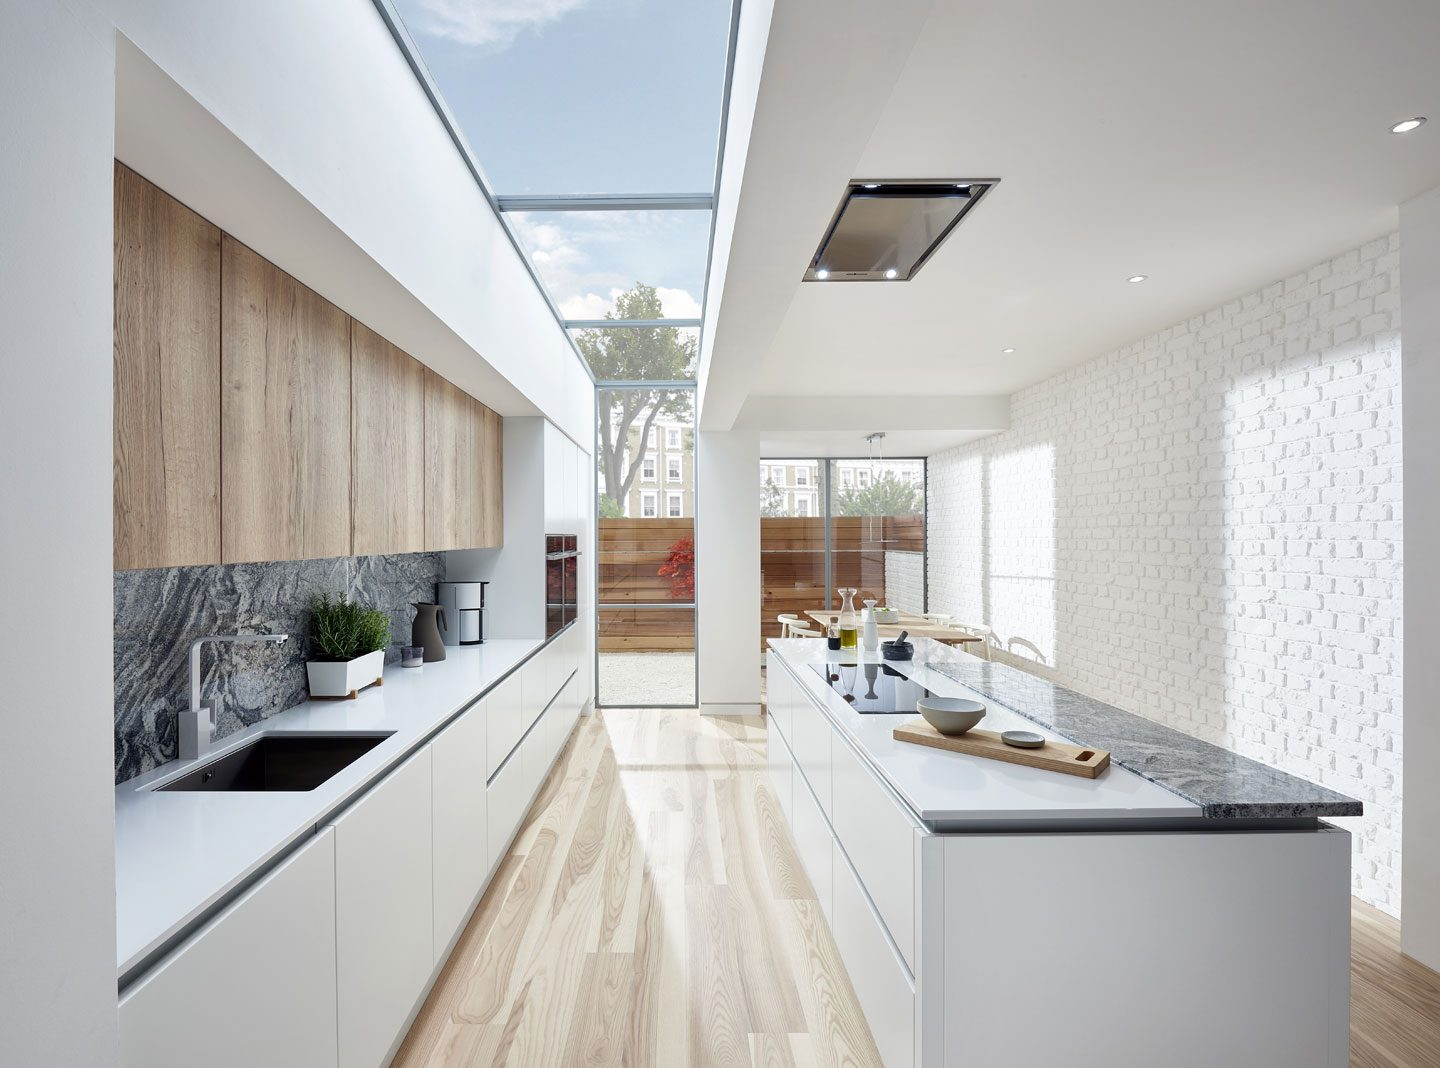 Light Coloured Cabinets - Brightly coloured kitchens and trendy white cabinets are in. Darker kitchens with the use of darker countertops and cupboards are somewhat out of fashion and are currently reserved for the bold. The newest style of white cabinets and brightly coloured countertops are becoming one of the best in kitchen designs for the upcoming year.